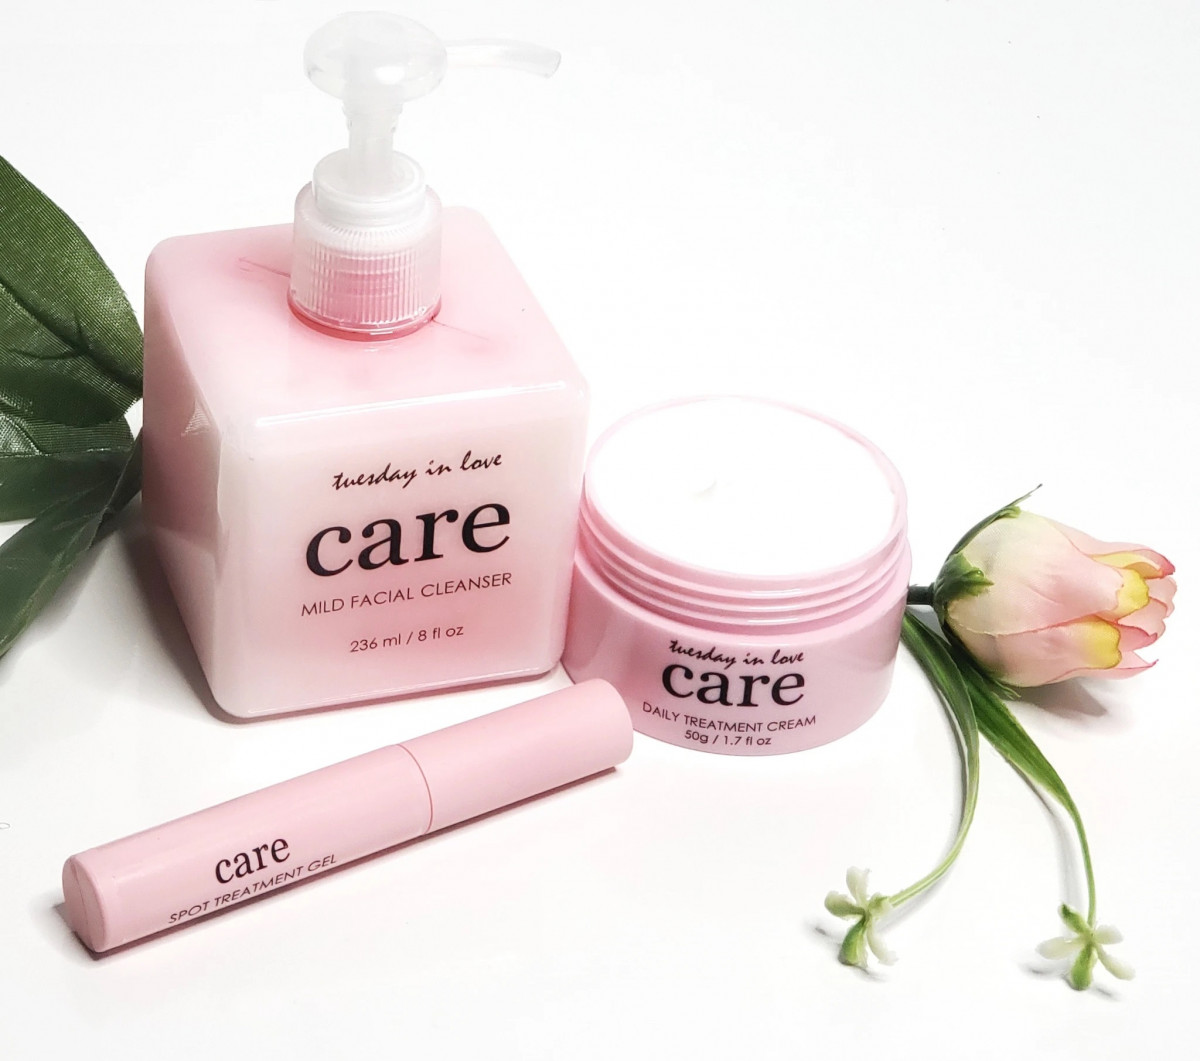 Why Care Acne Treatment is Better than Benzoyl Peroxide